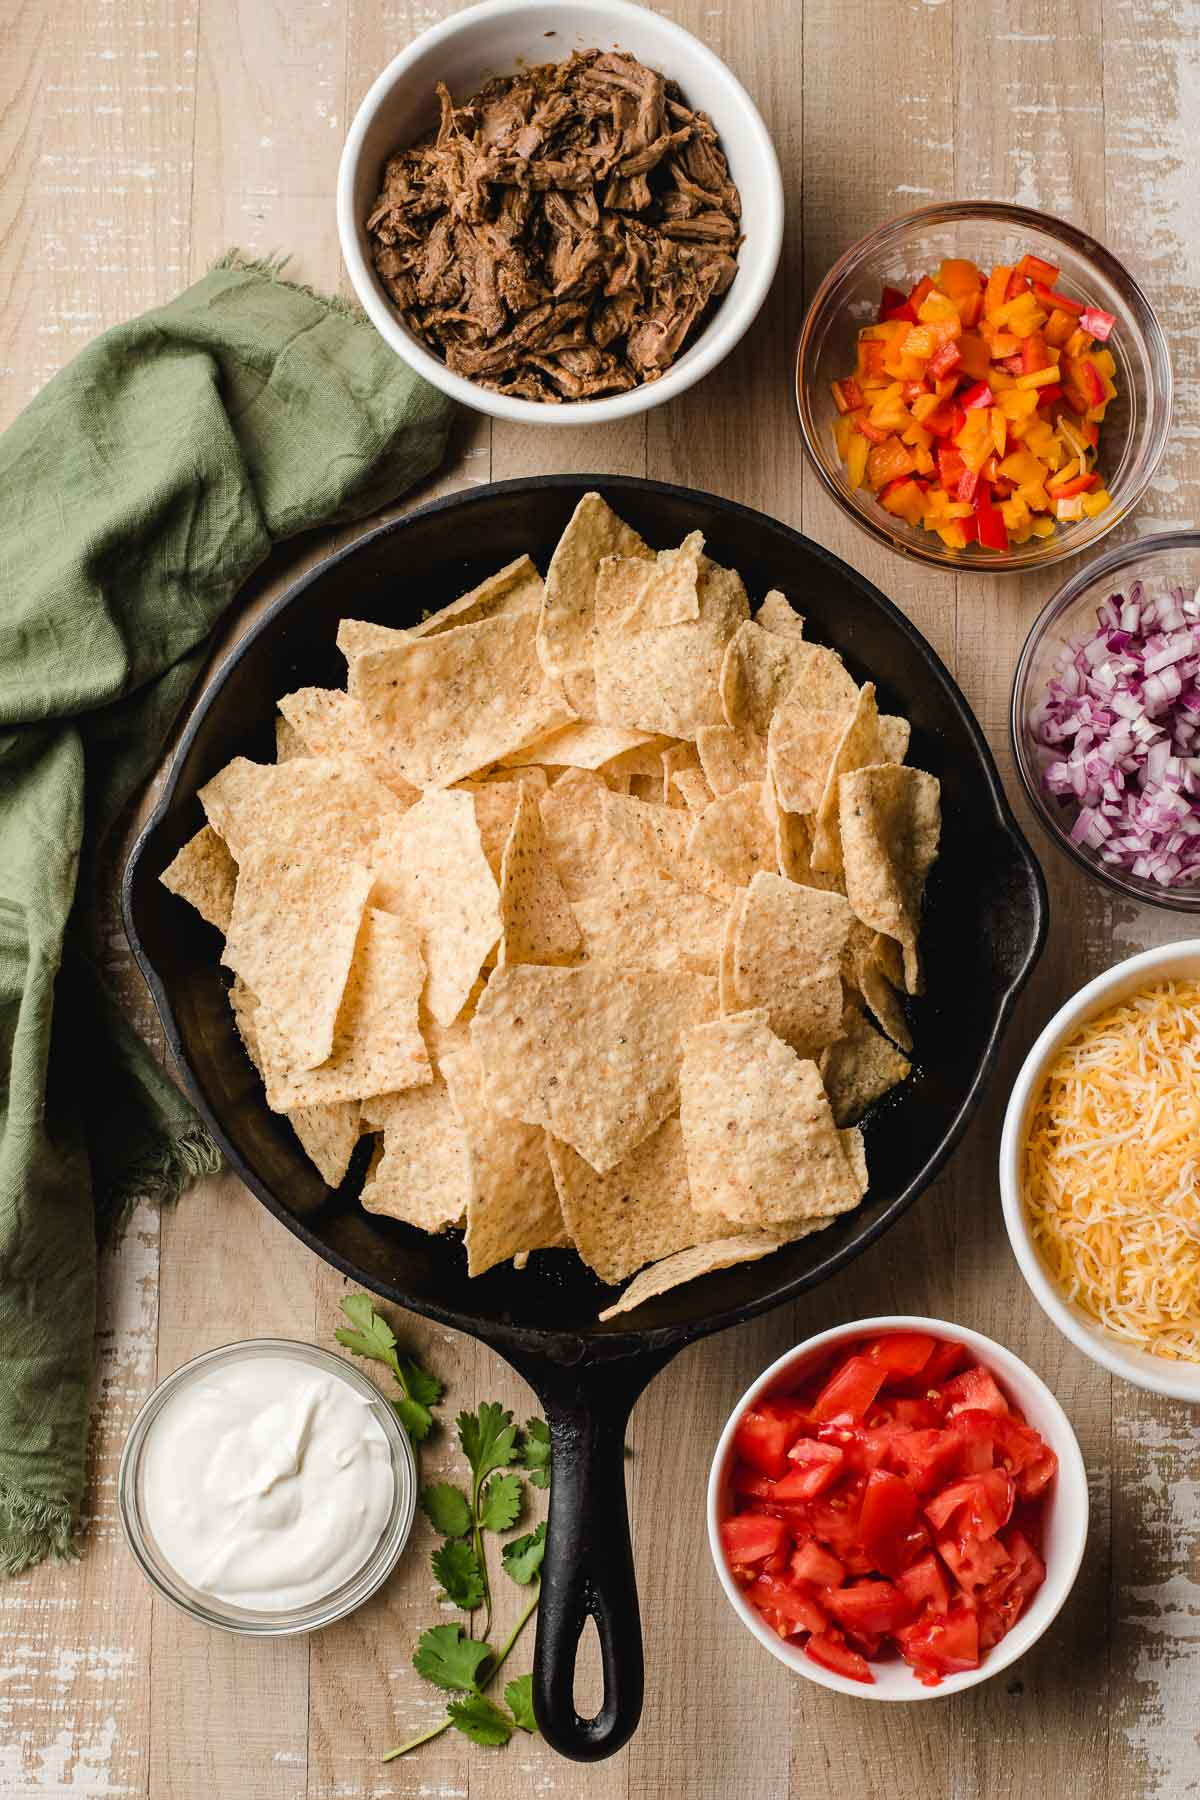 Ingredients for nachos, including a cast iron skillet filled with tortilla chips and bowl of cheese, tomatoes, onions, peppers, beef, and sour cream.